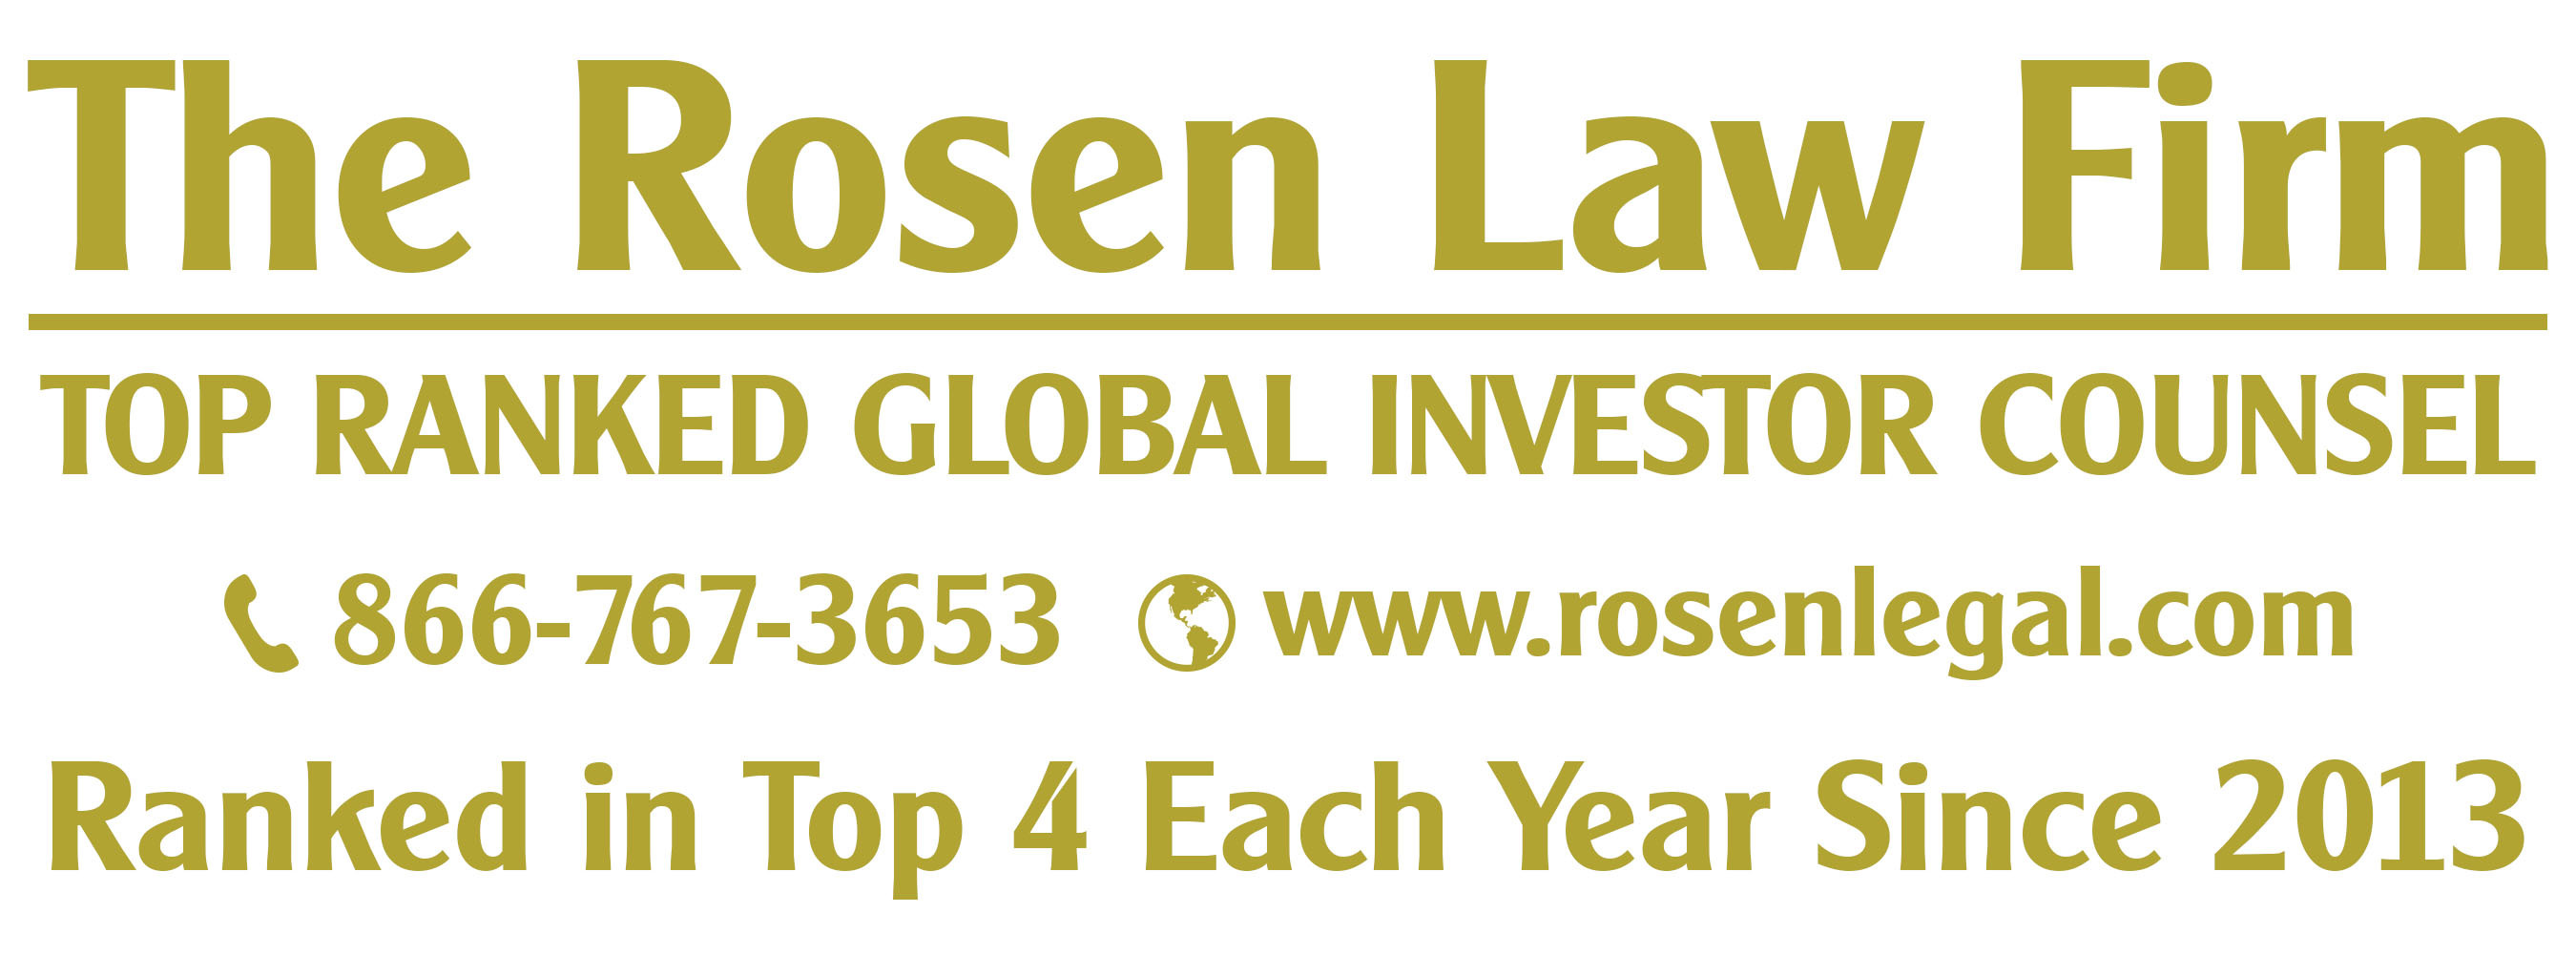 HEXO CORP. LOSS NOTICE: TOP RANKED ROSEN LAW FIRM Reminds HEXO Corp. Investors of Important January 27th Deadline in Securities Class Action